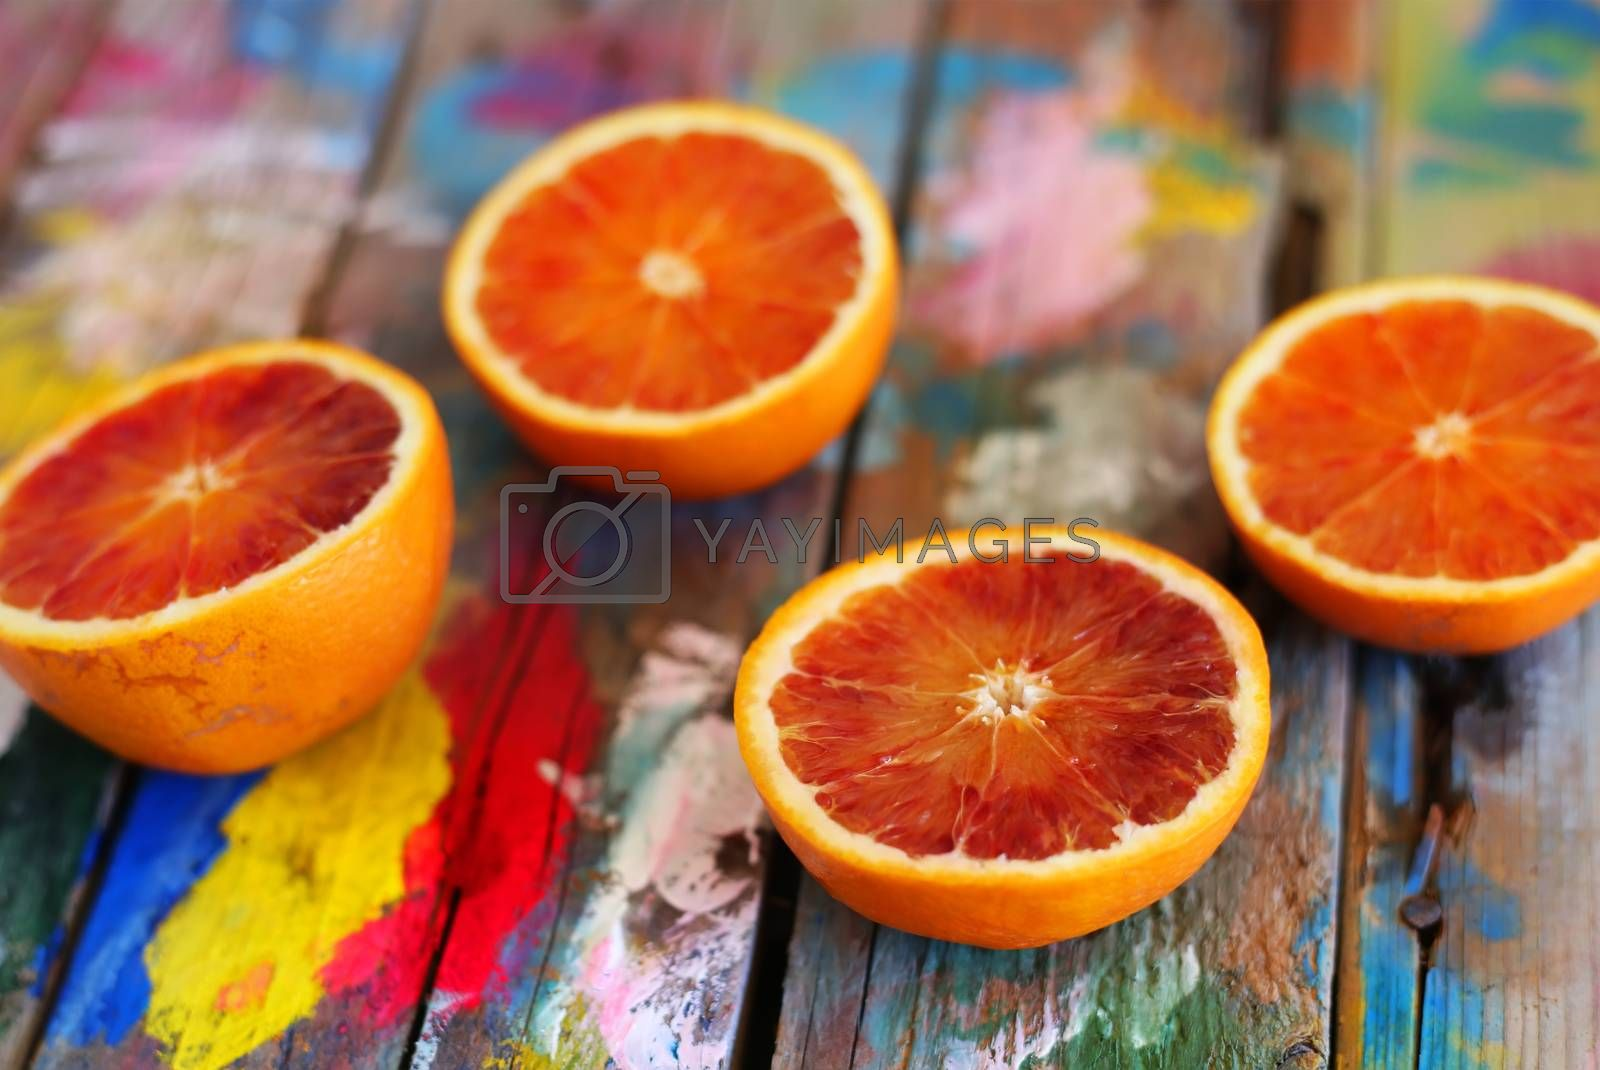 This is a photo of oranges on multi colored background